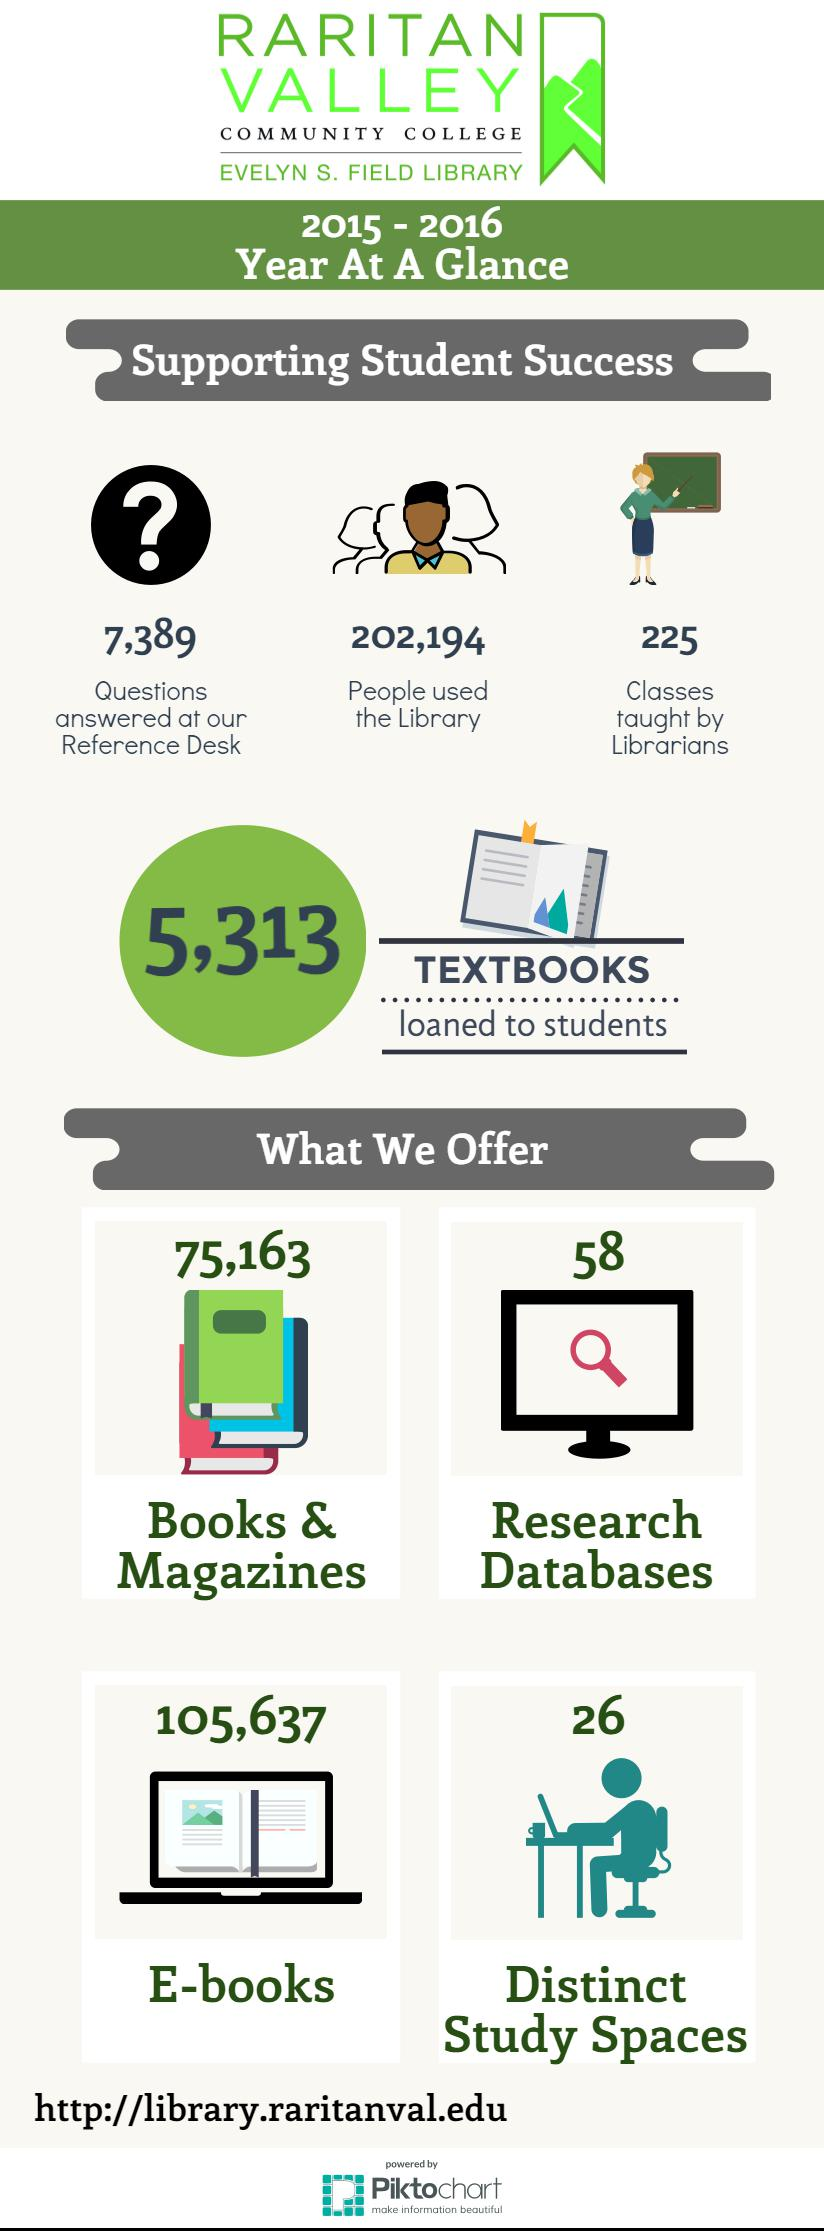 Evelyn s field library blog evelyn s field library at raritan year at a glance infographic fandeluxe Choice Image